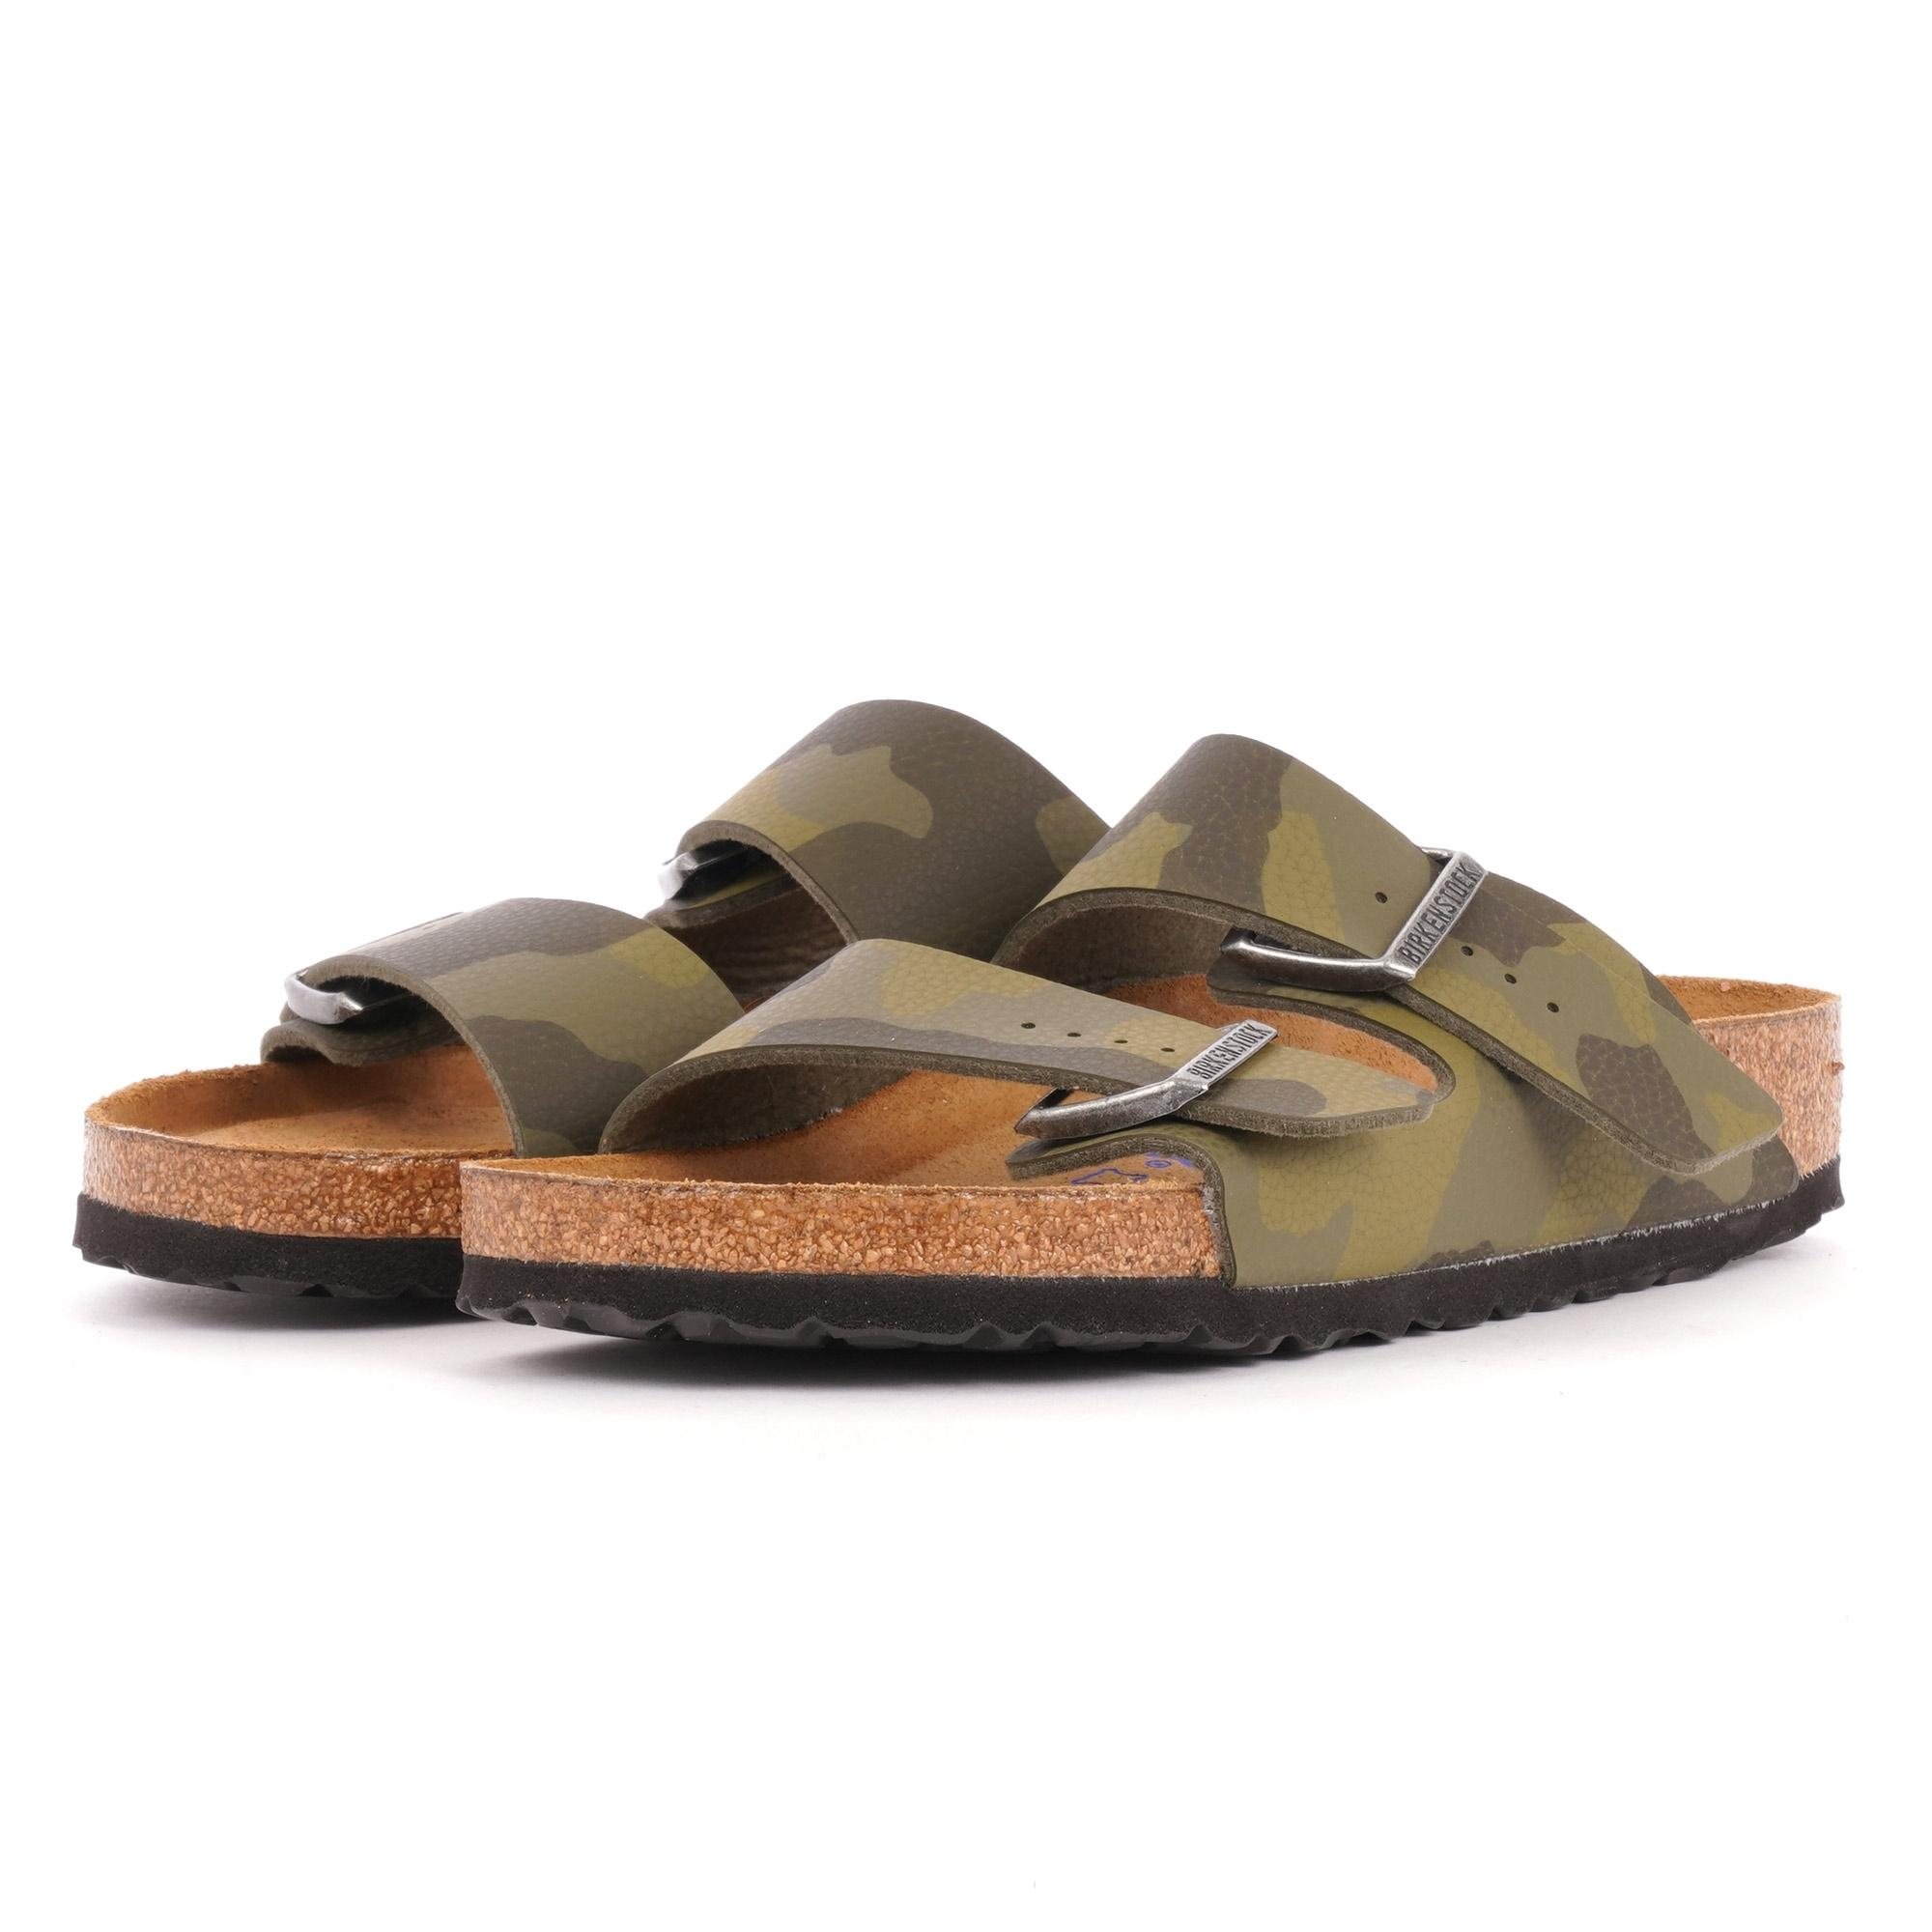 3252ad16874 Birkenstock Arizona Sandals in Brown for Men - Lyst